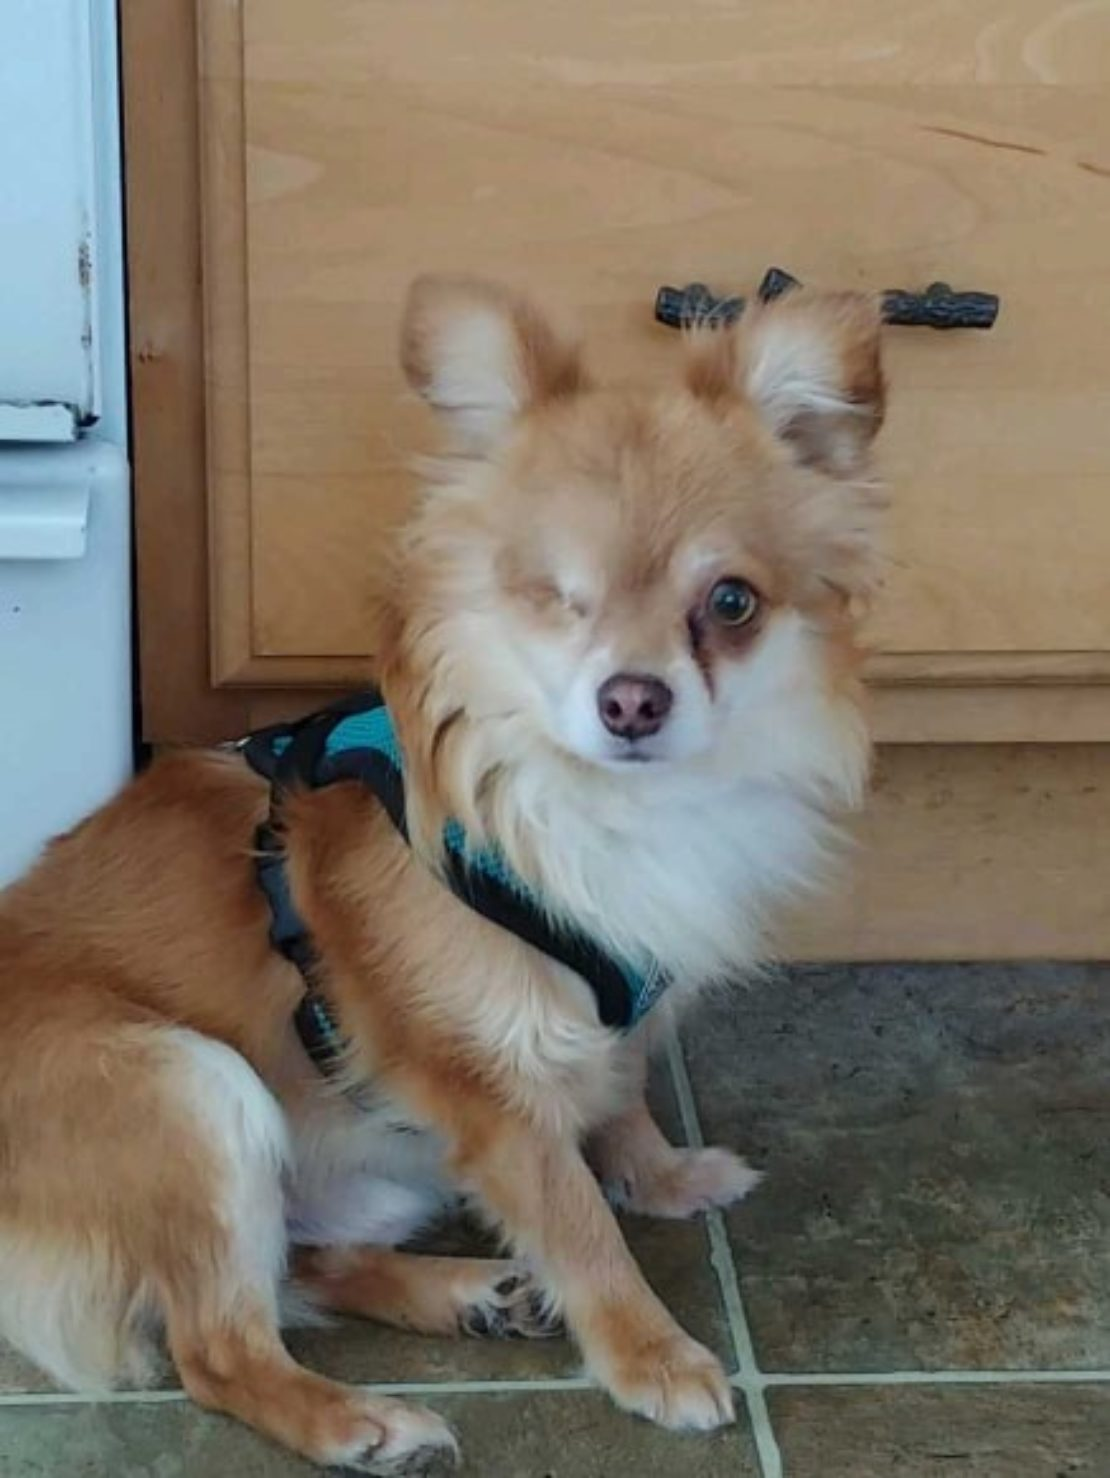 orange-and-white Pomeranian mix, wiht one eye and a harness, looks at camera